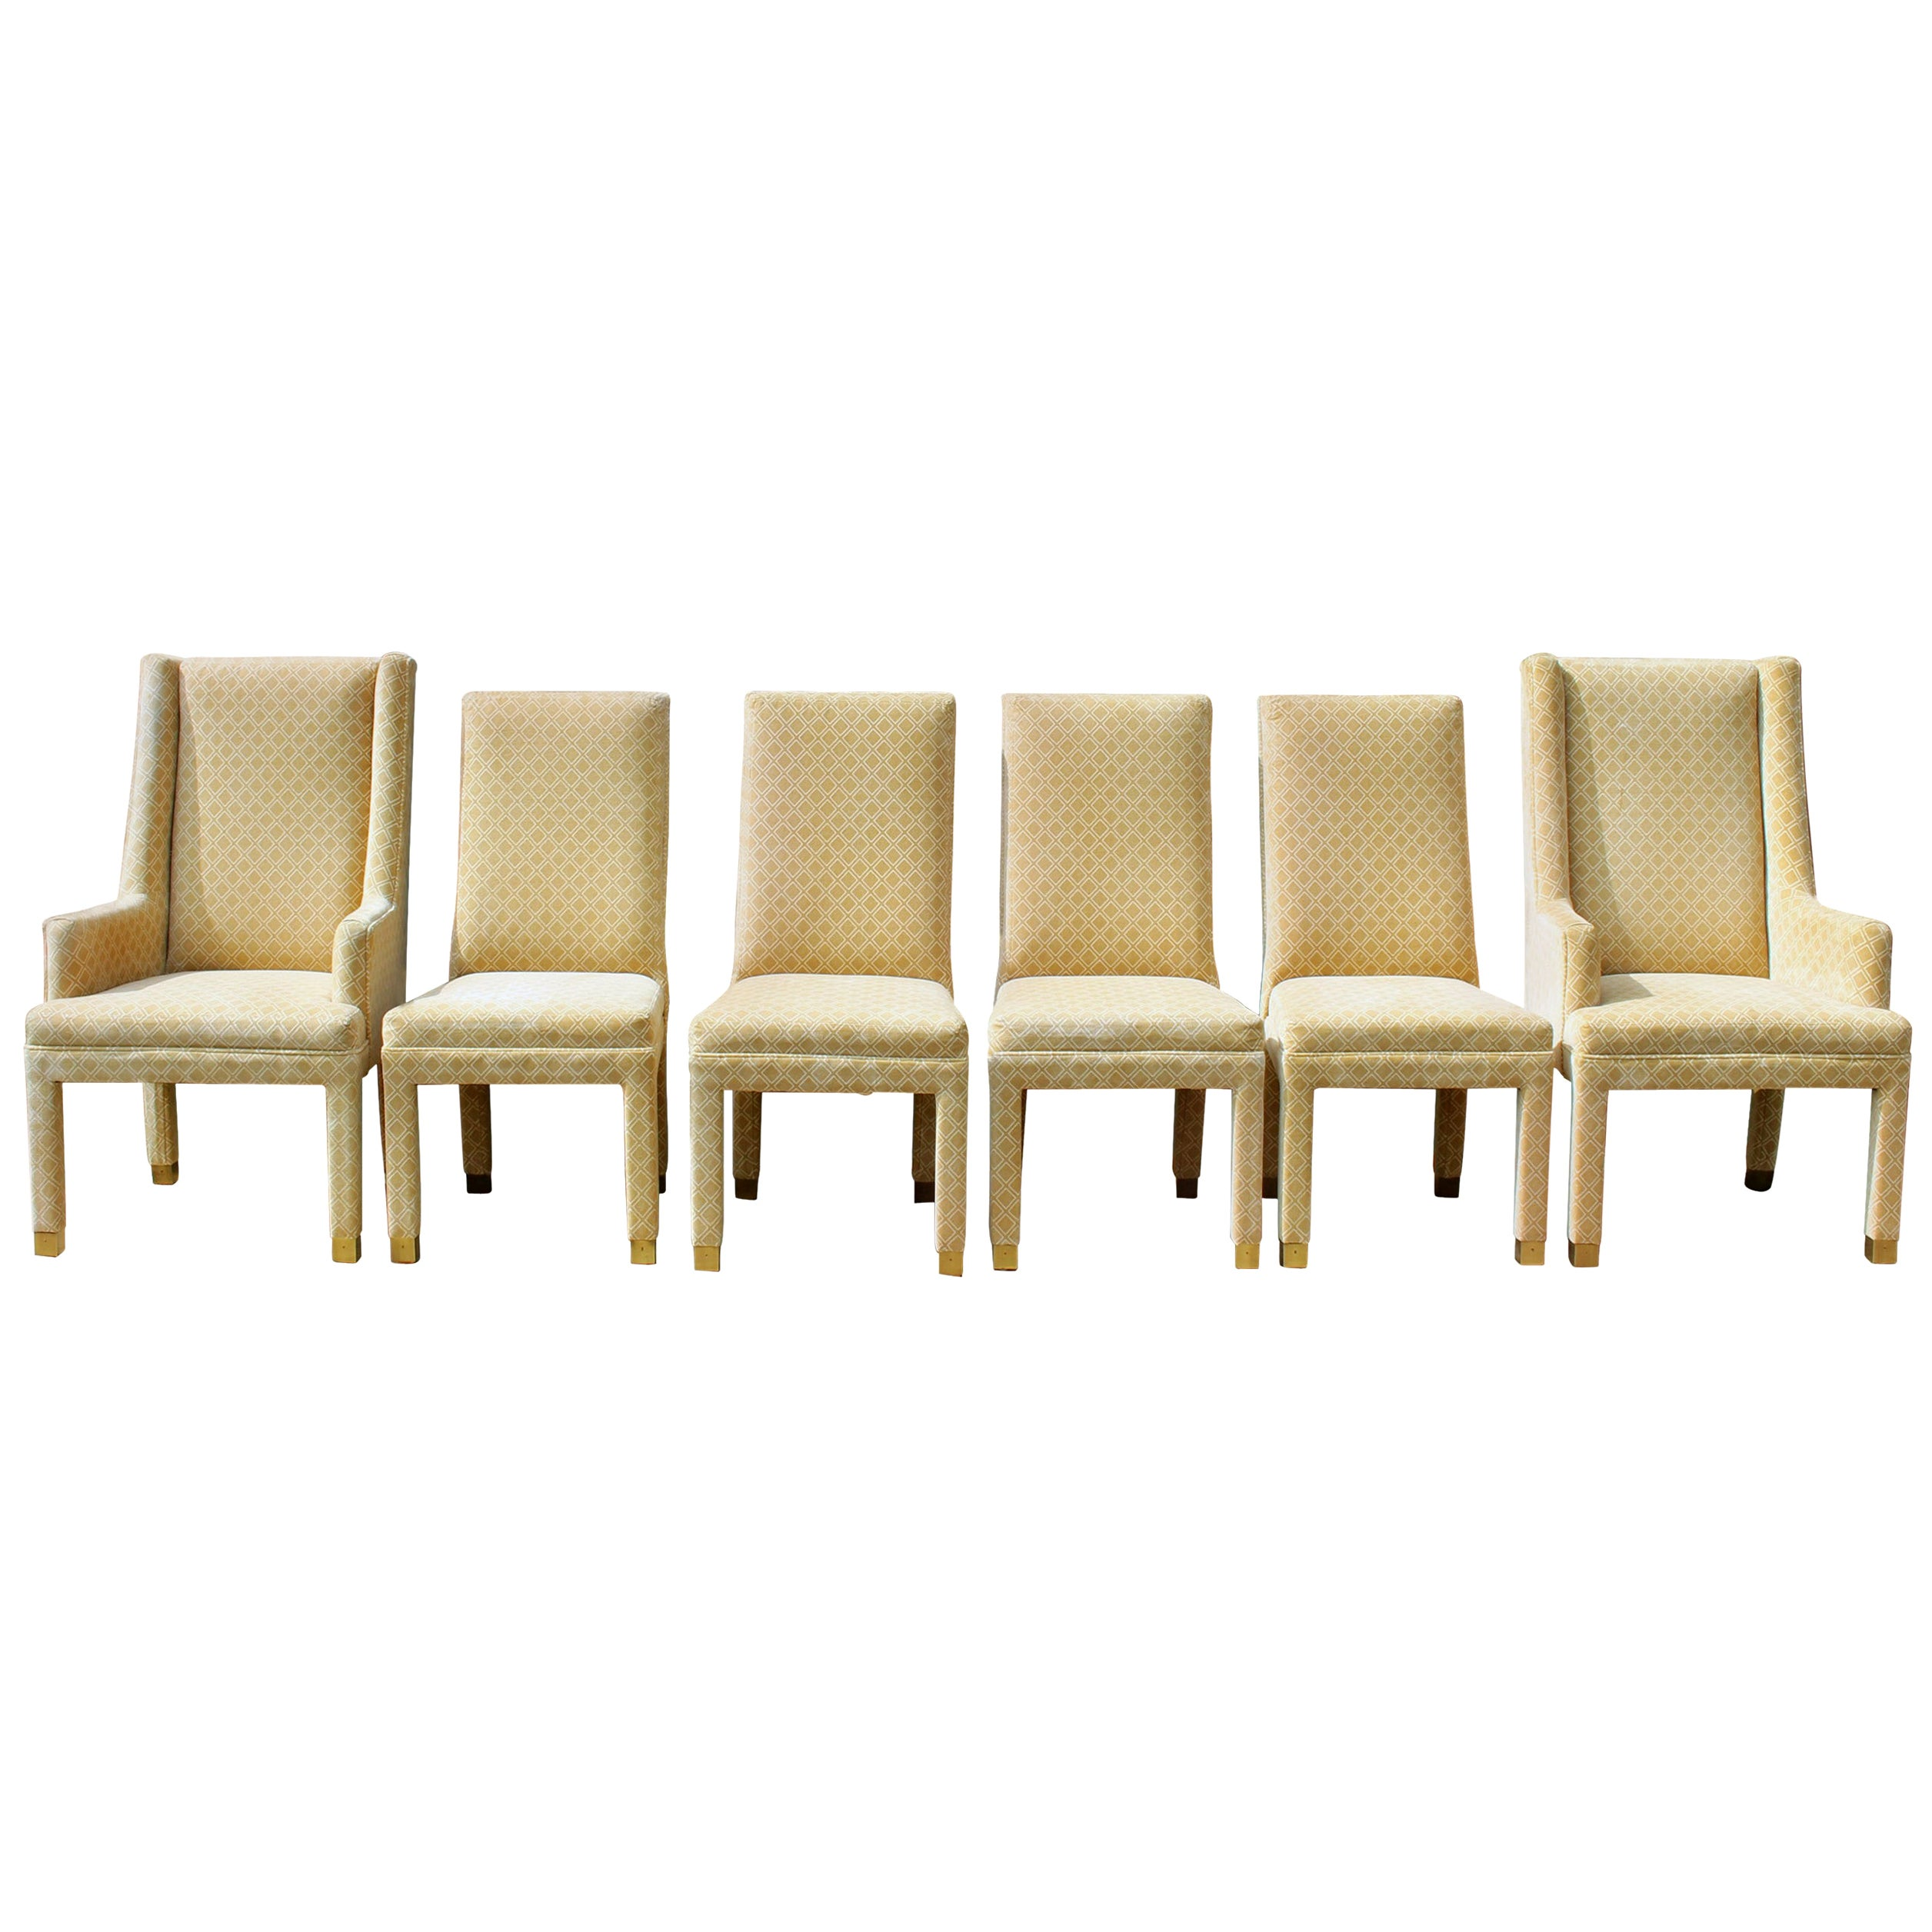 Set of 6 Henredon Parsons Style Upholstered Dining Chairs